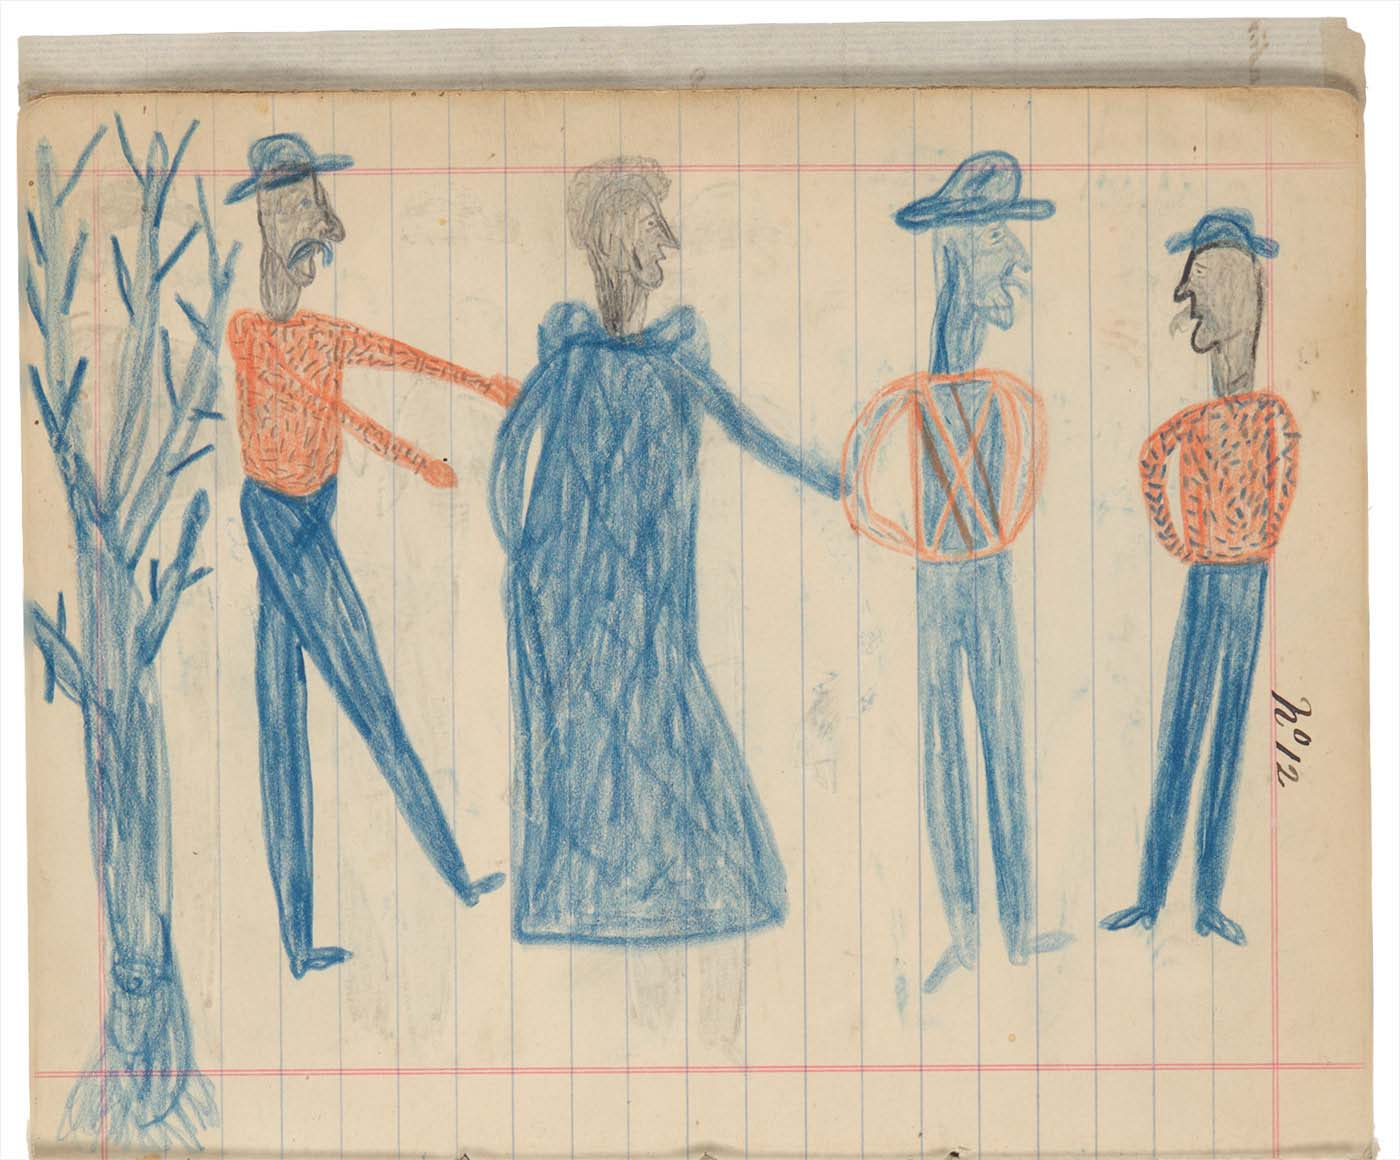 Sketchbook drawings of four figures, one woman and three men in blue and orange, and on the left a tree  - click to view larger image